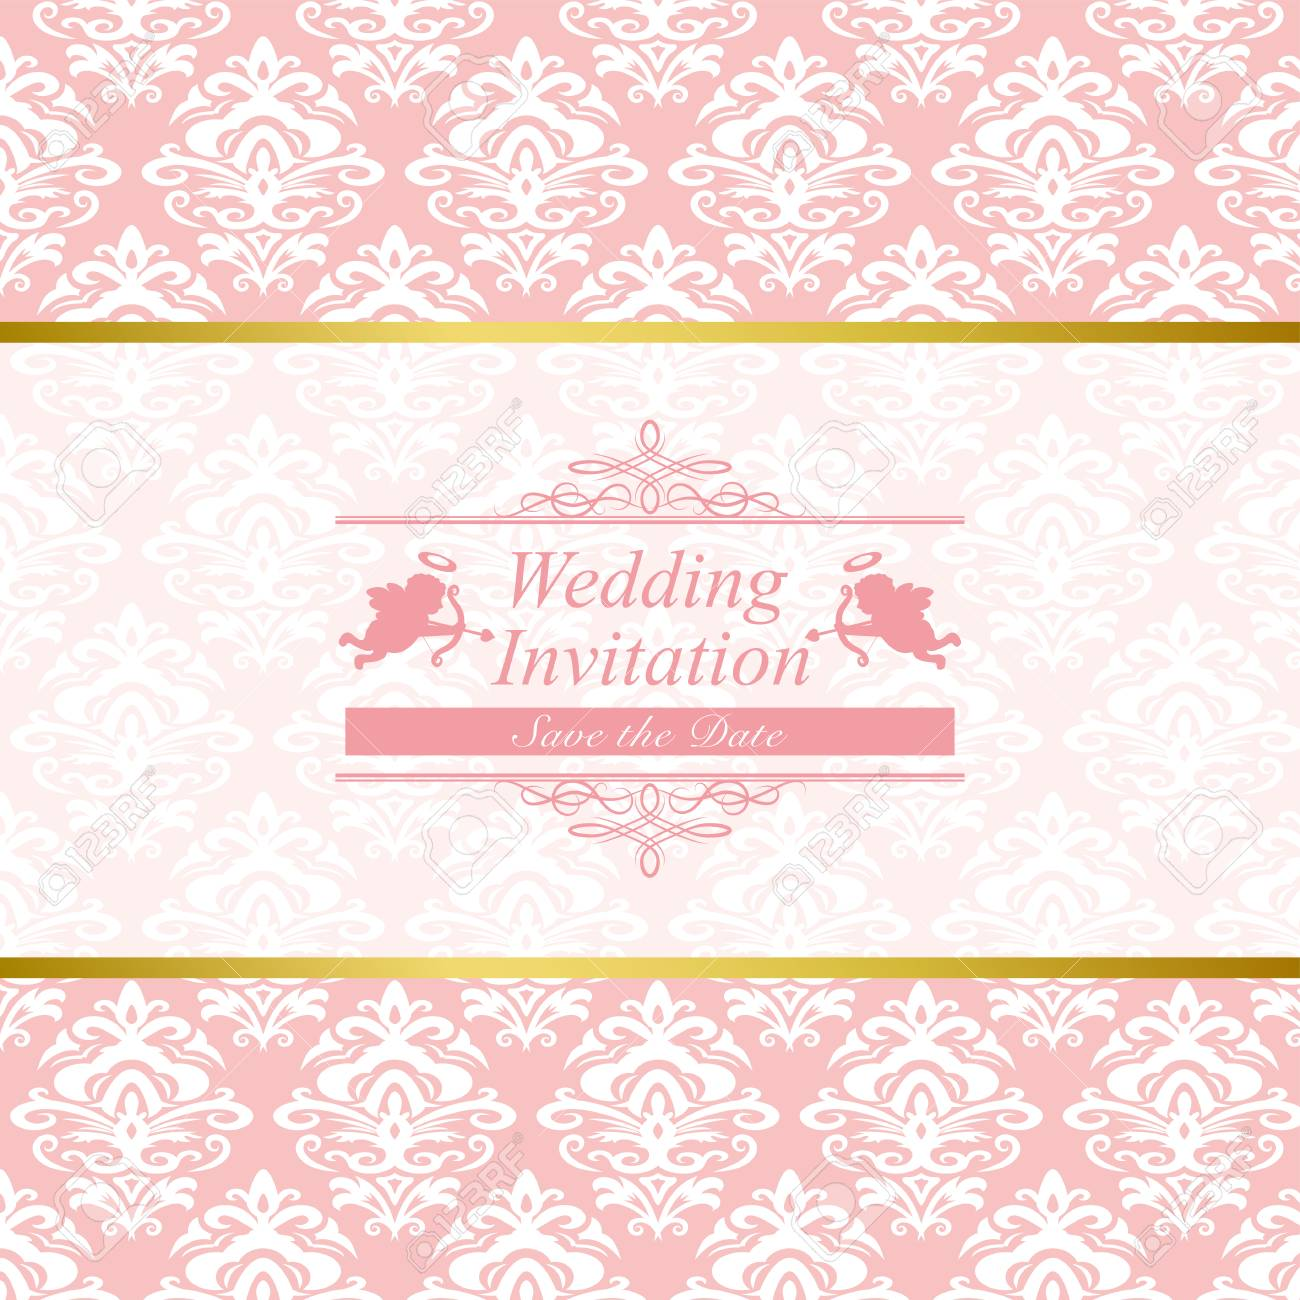 vintage wedding invitation card in pink damask background royalty free cliparts vectors and stock illustration image 75951885 vintage wedding invitation card in pink damask background